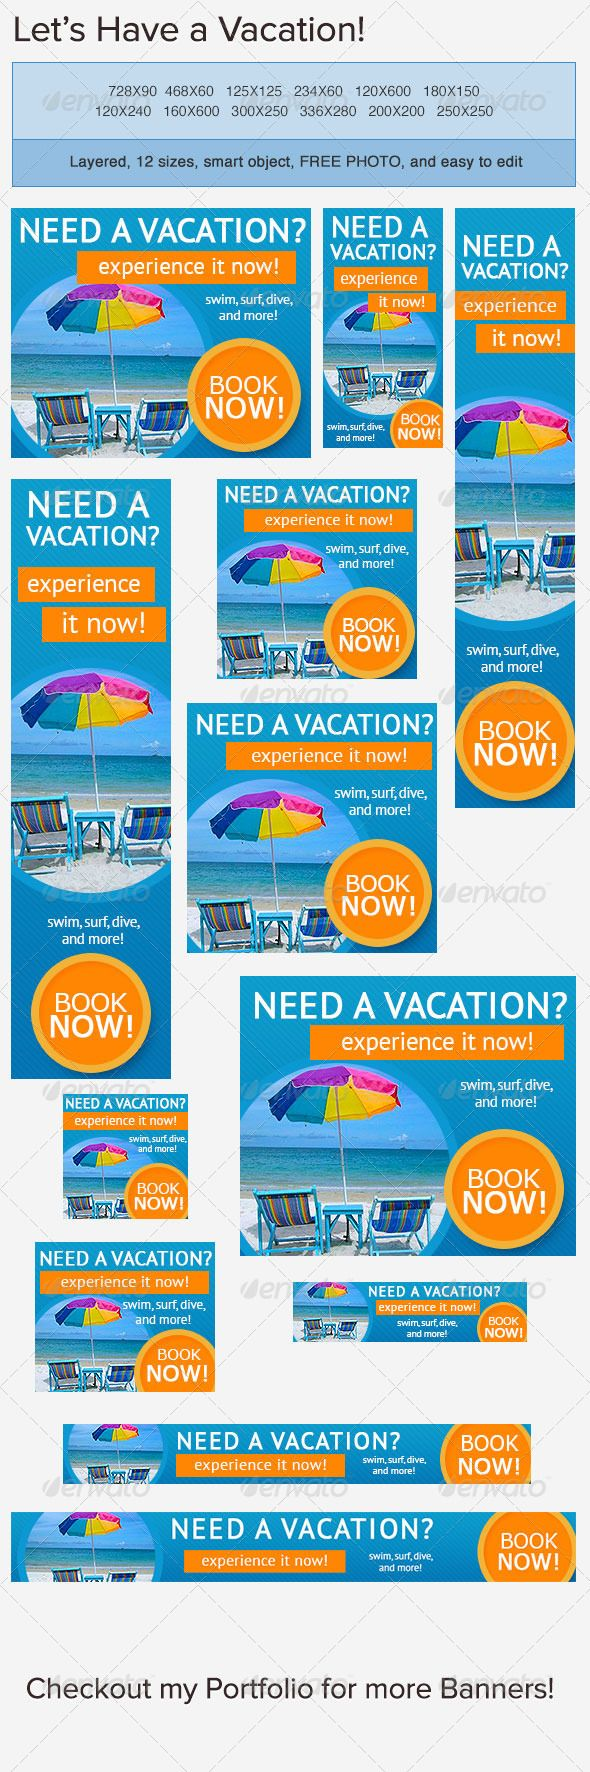 Vacation Banner Ad | Advertising, Company banner and Affiliate ...